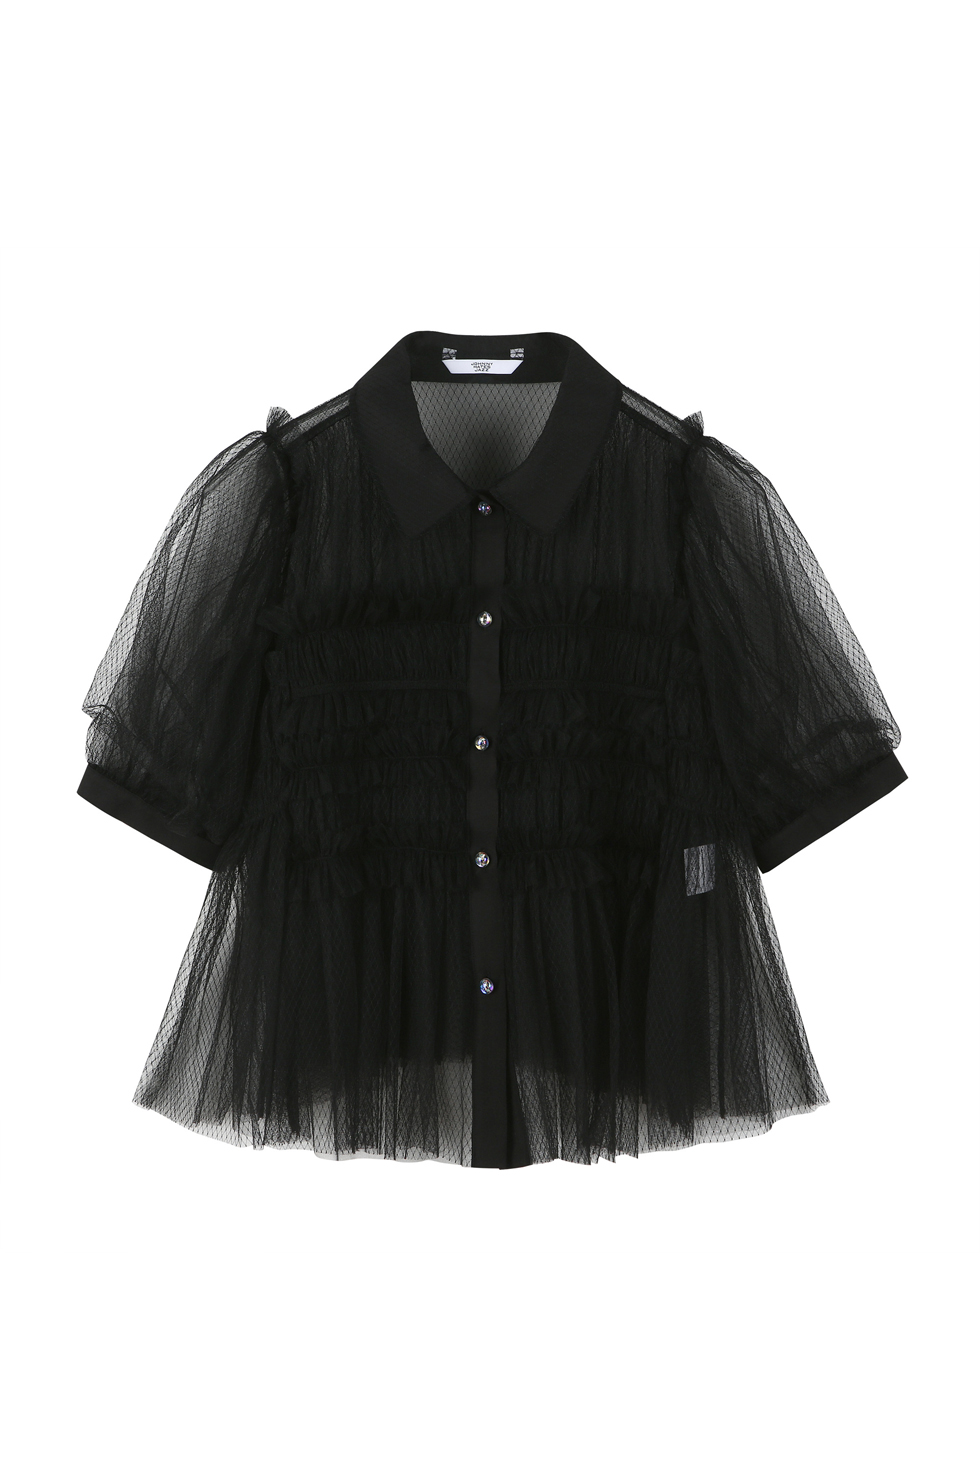 TULLED RUFFLE BLOUSE - BLACK